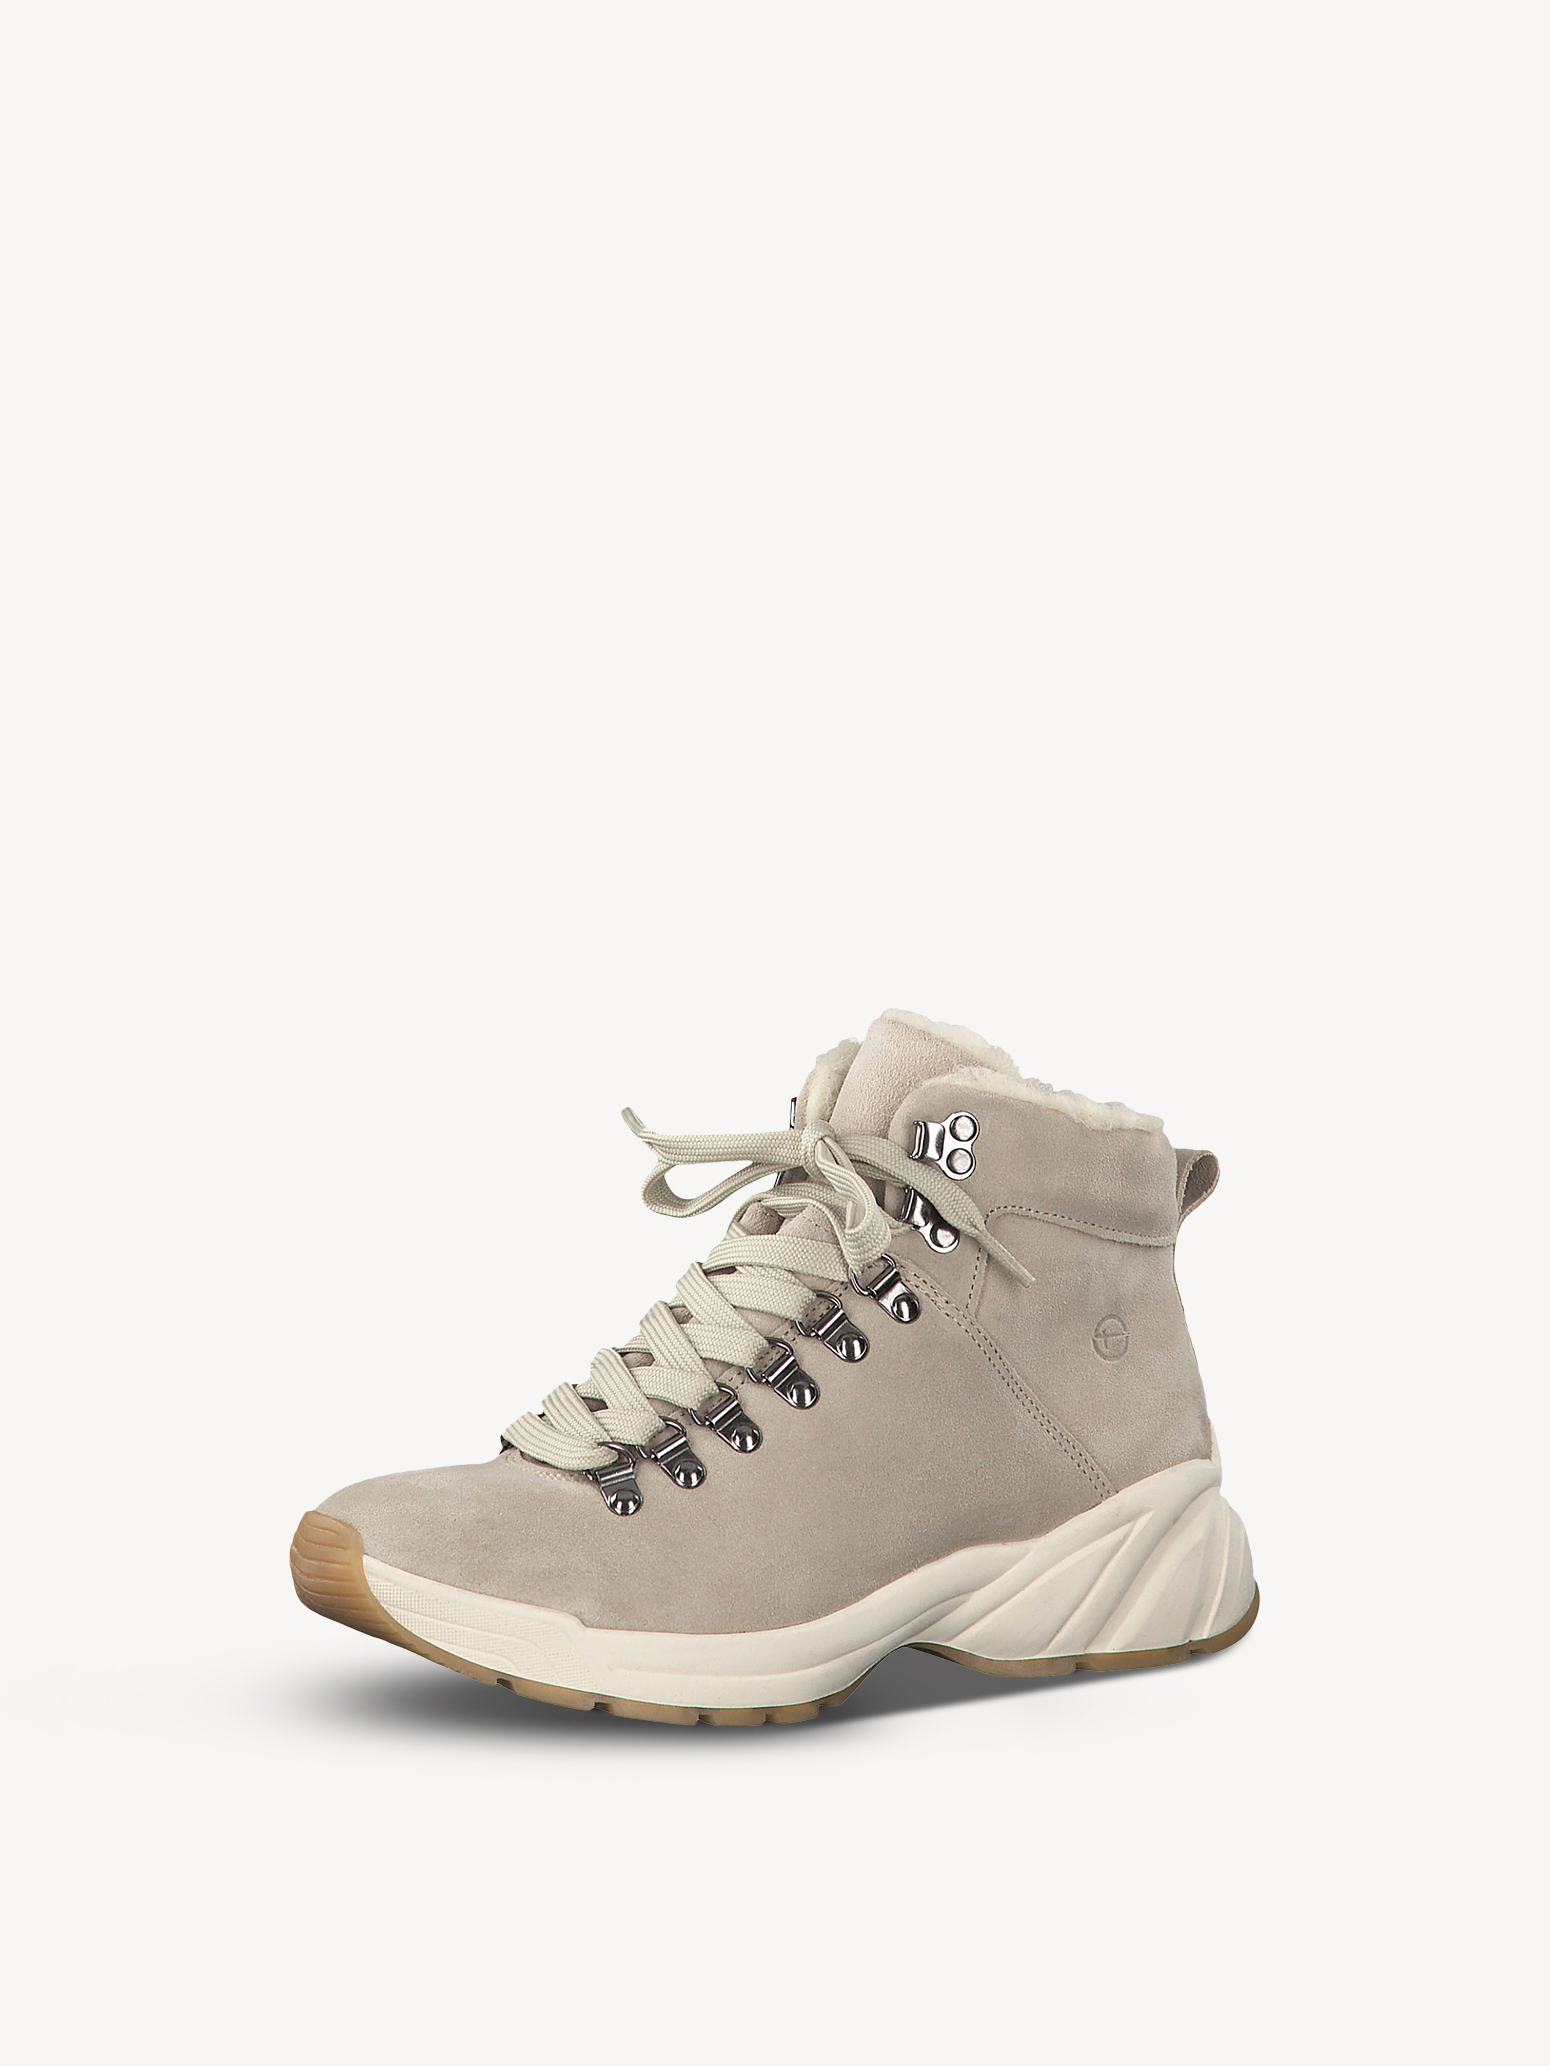 Bottine en cuir - beige, BEIGE, hi-res